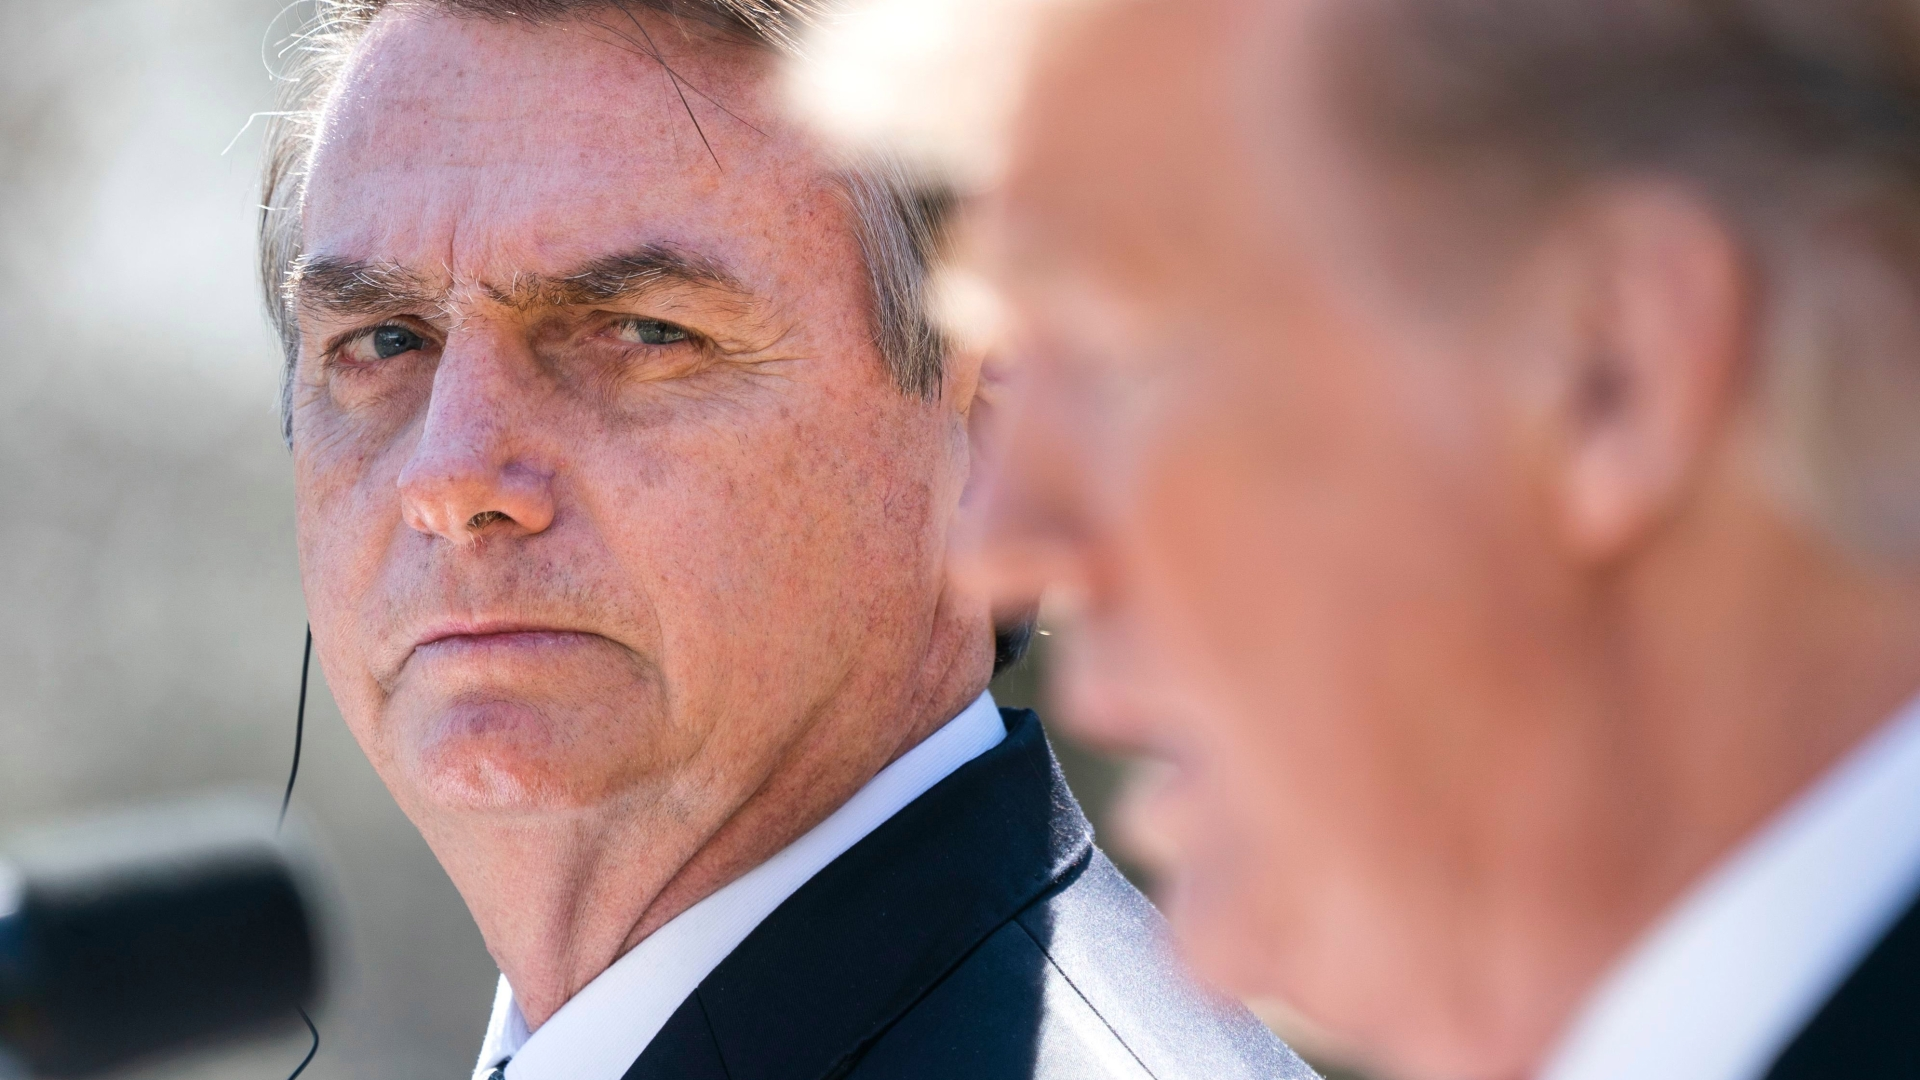 Trump sees a lot to like in Brazil's unapologetically far-right, nationalist leader